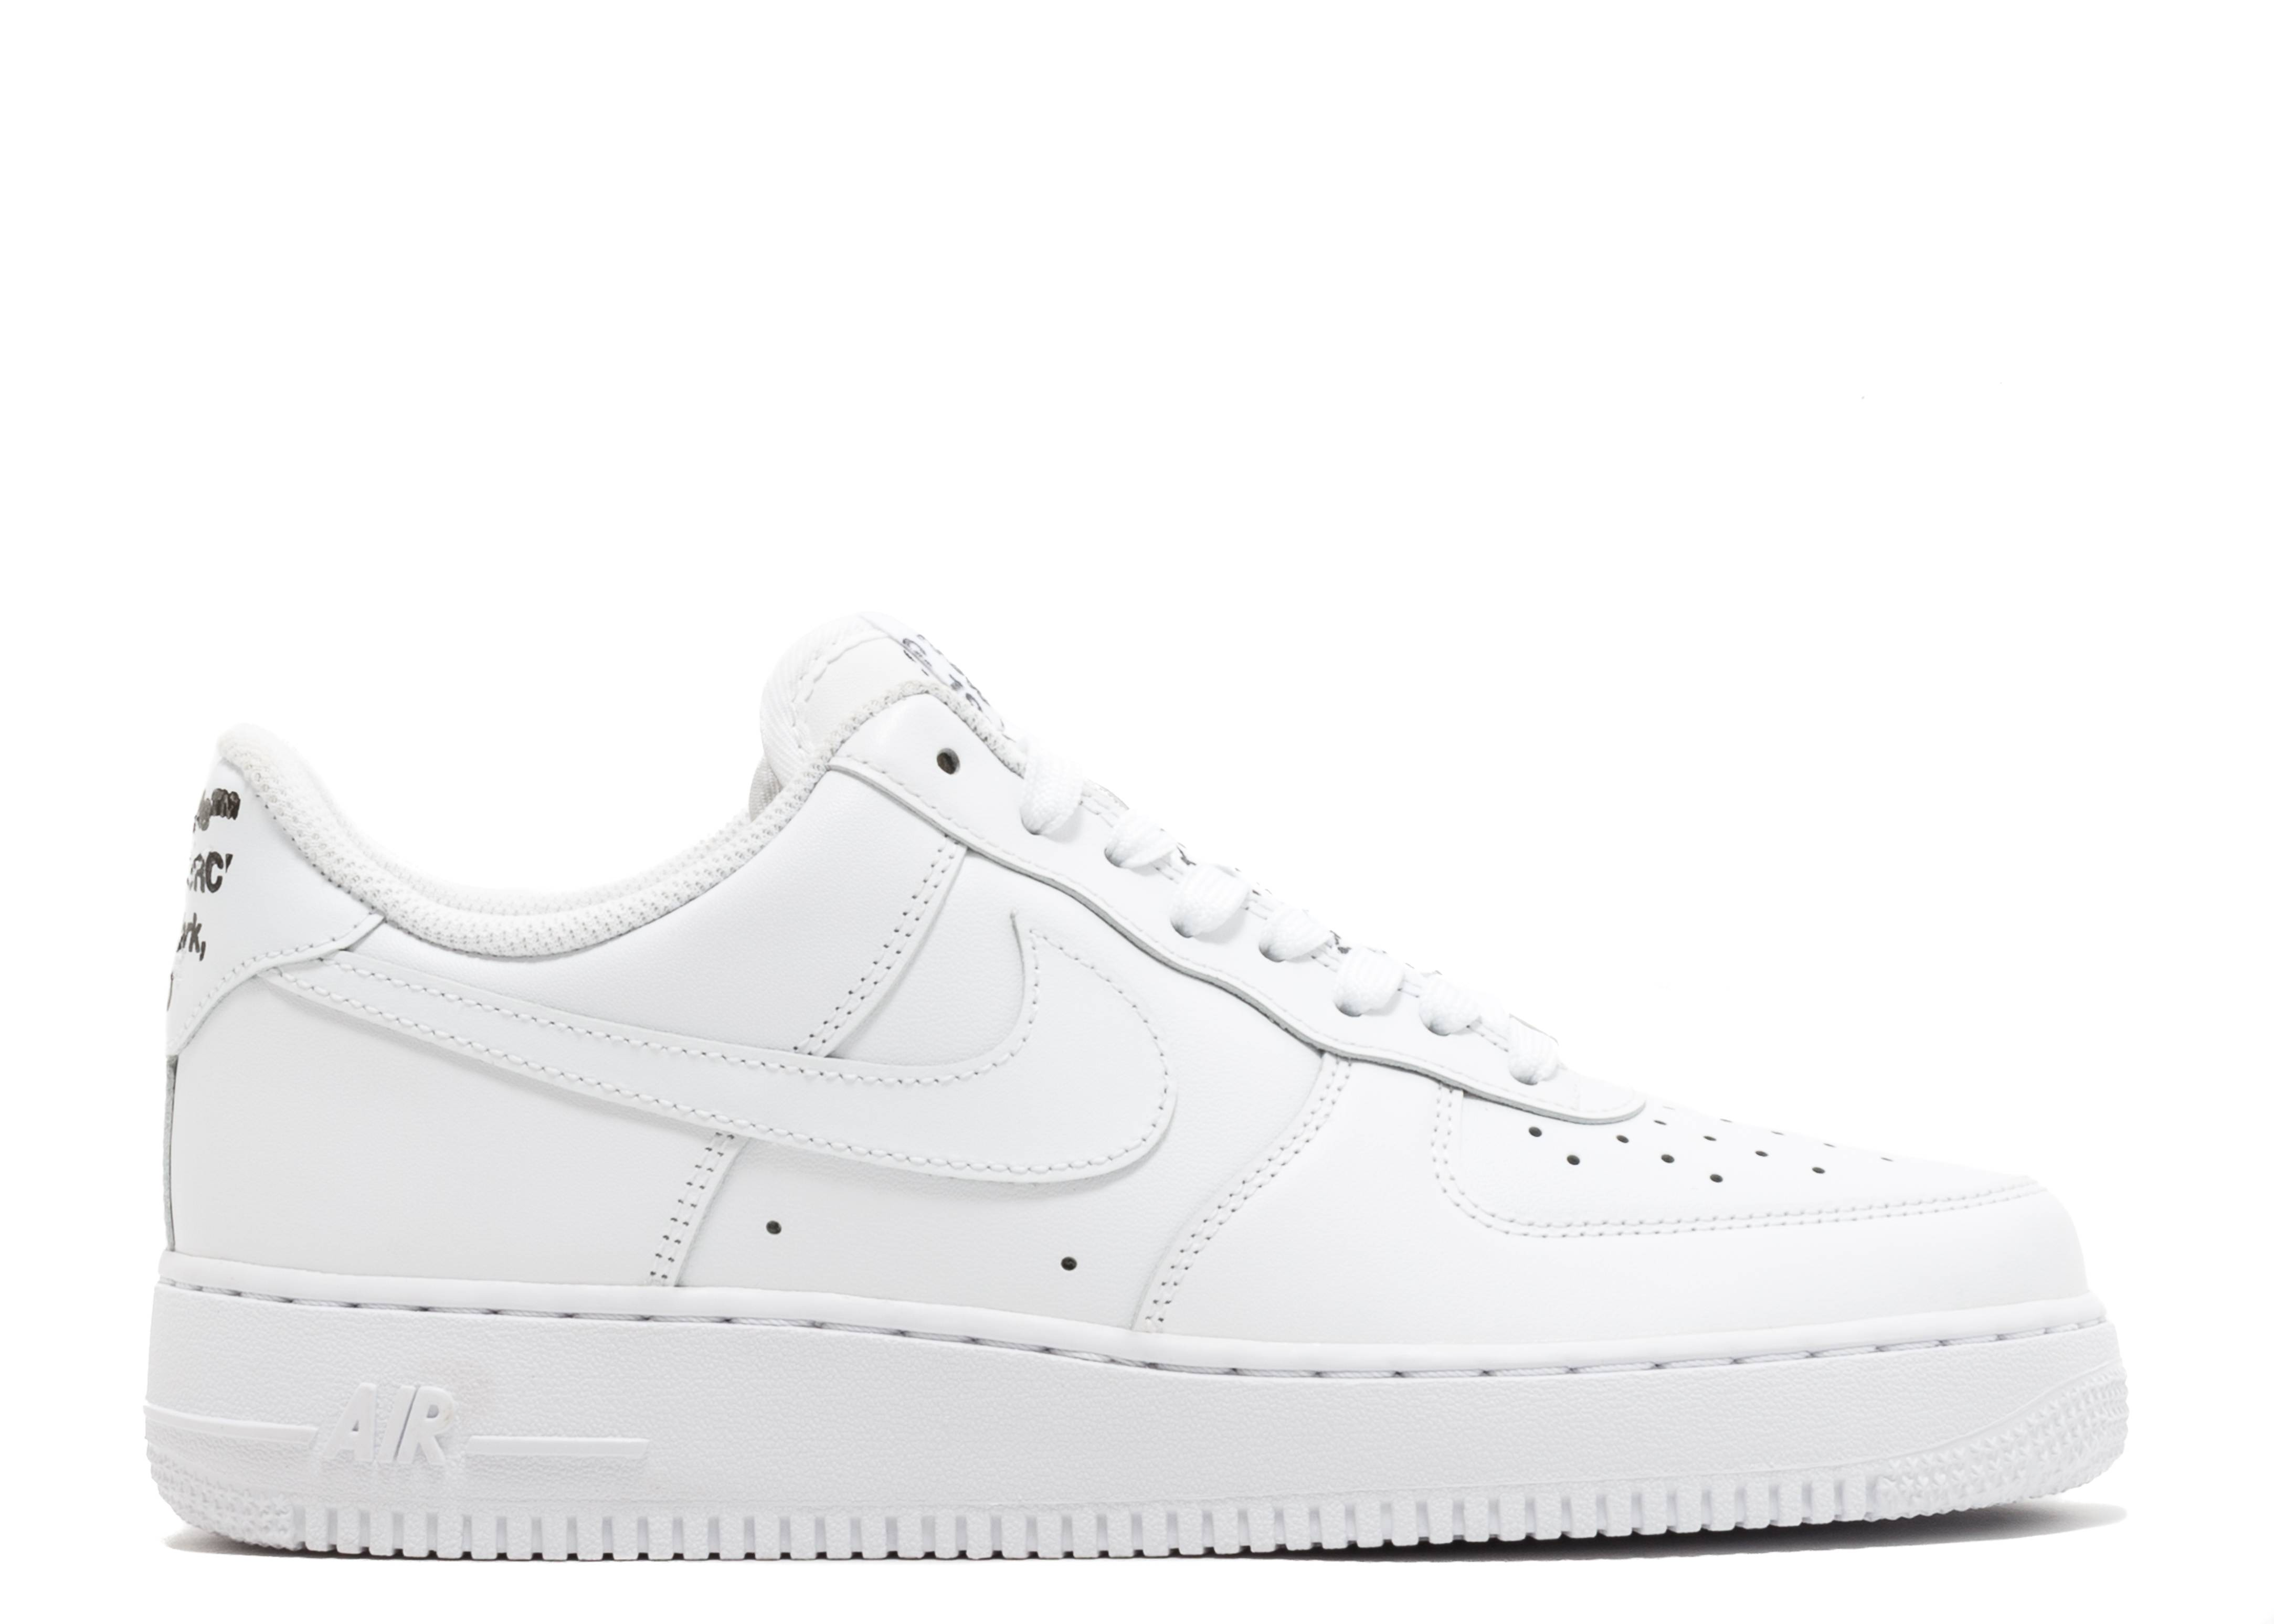 """Air Force 1 '07 NIkelab """"extra credit"""" """"Off White """"extra credit"""""""""""